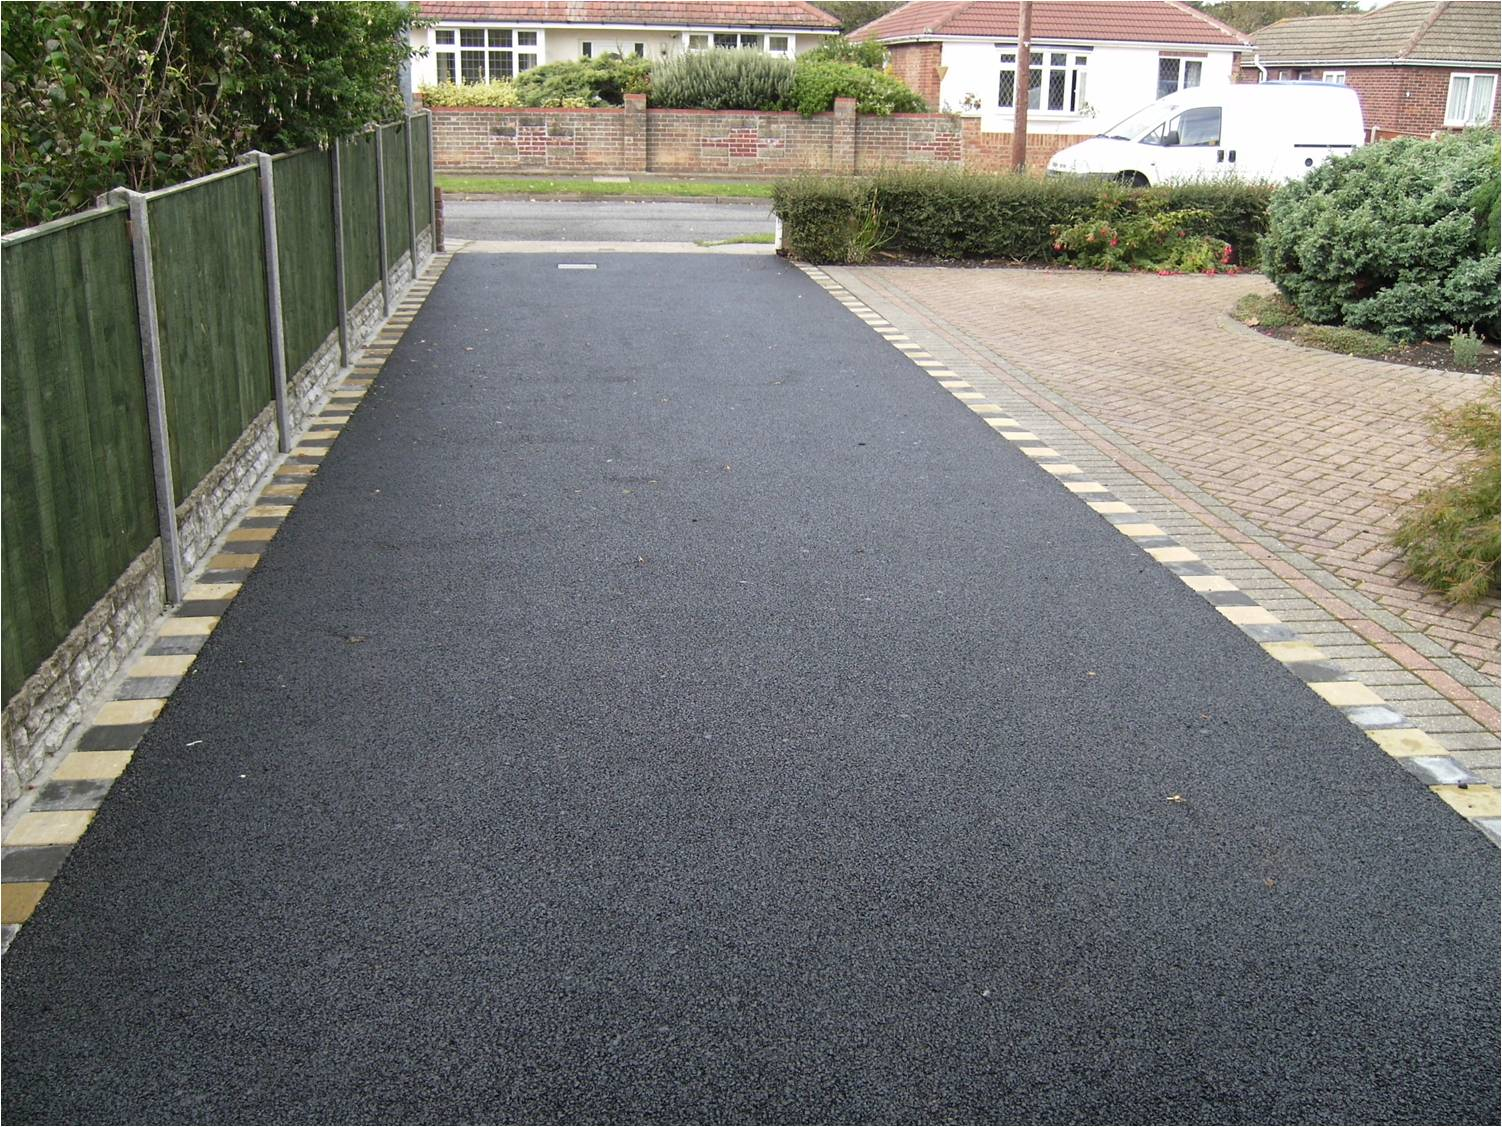 Rubber Tire Tracks On A New Concrete Driveway Page 2